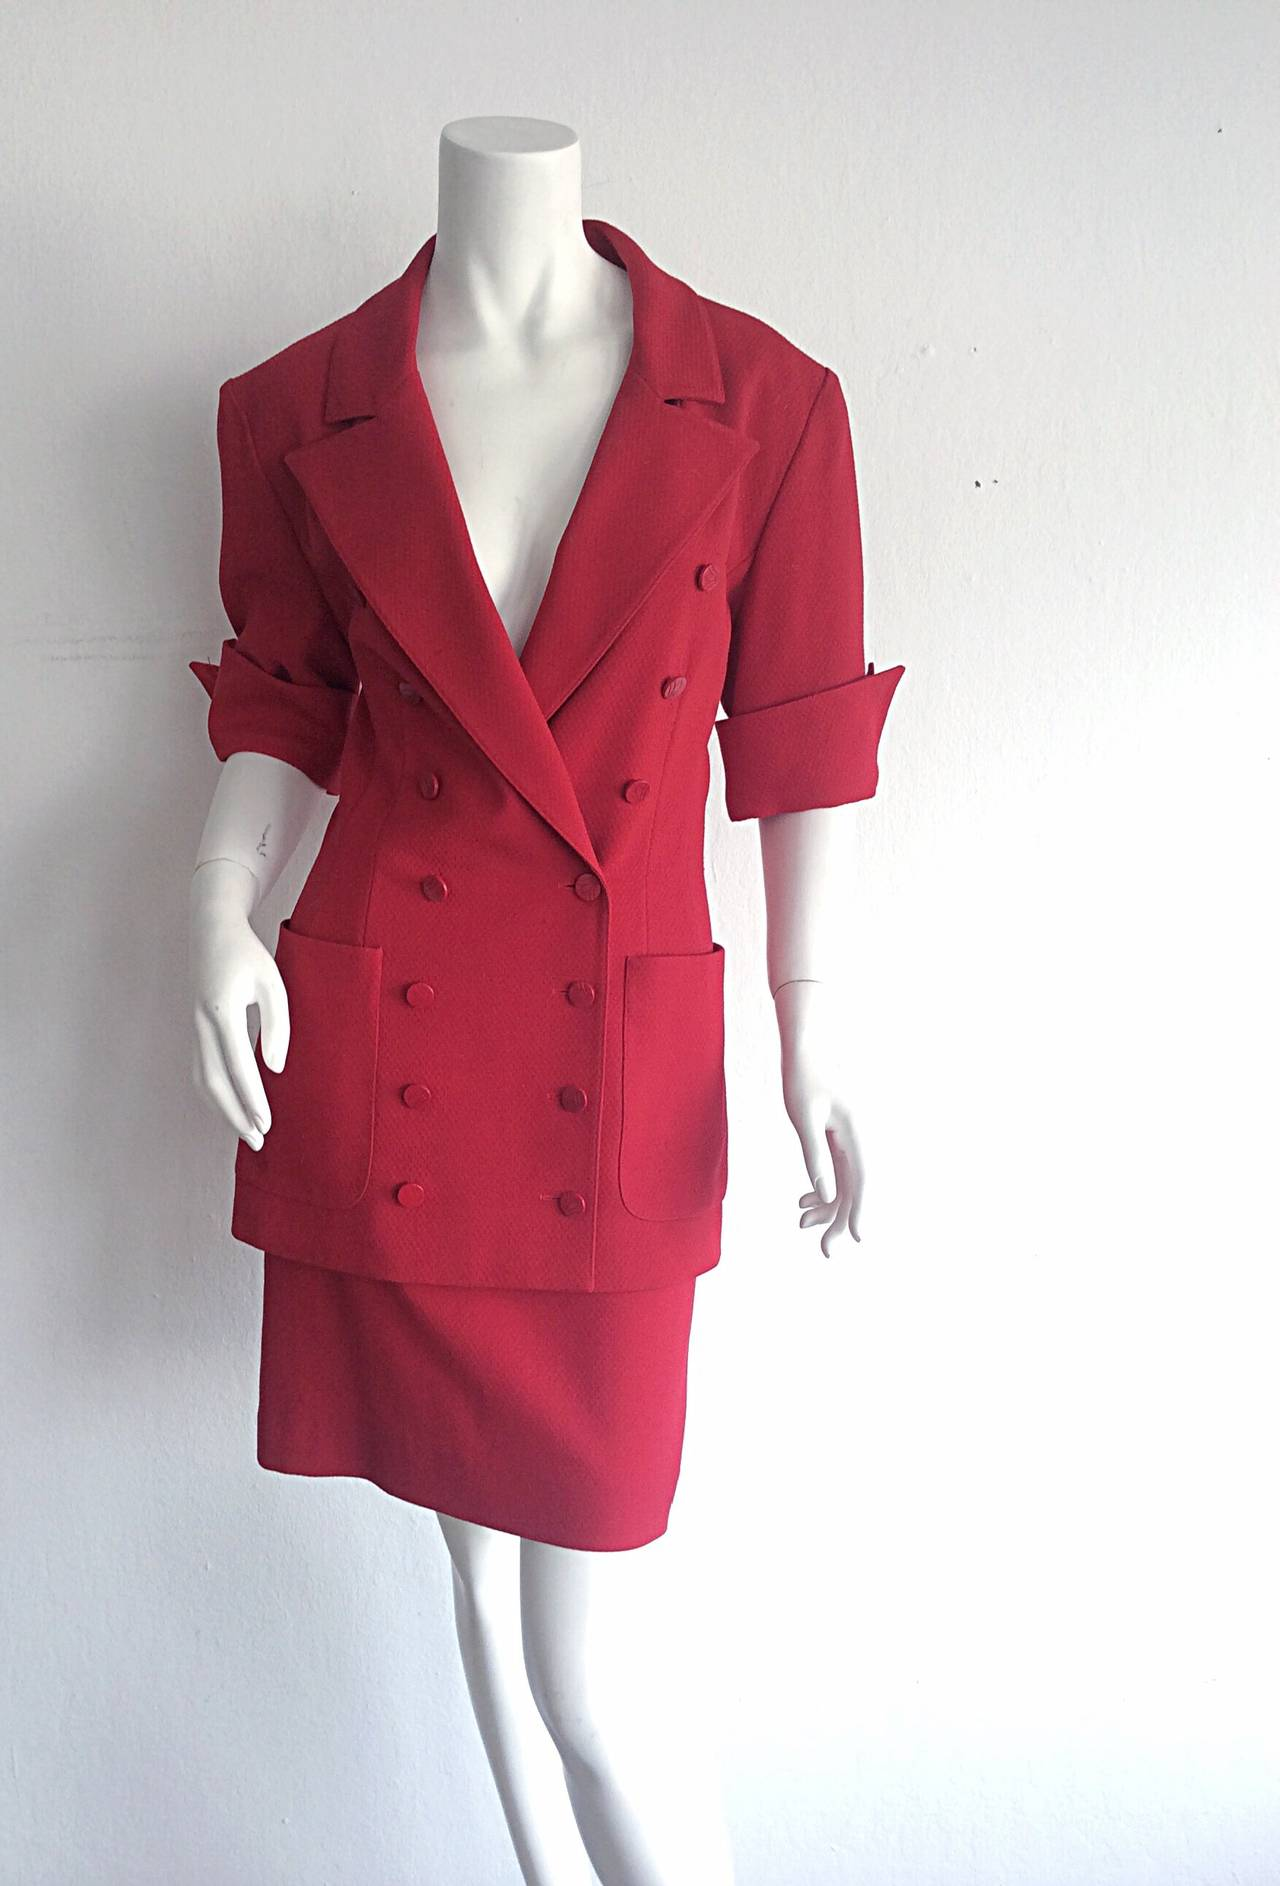 Gorgeous 1990s Vintage Karl Lagerfeld Bright Red Double Breasted Skirt Suit In Excellent Condition For Sale In San Francisco, CA